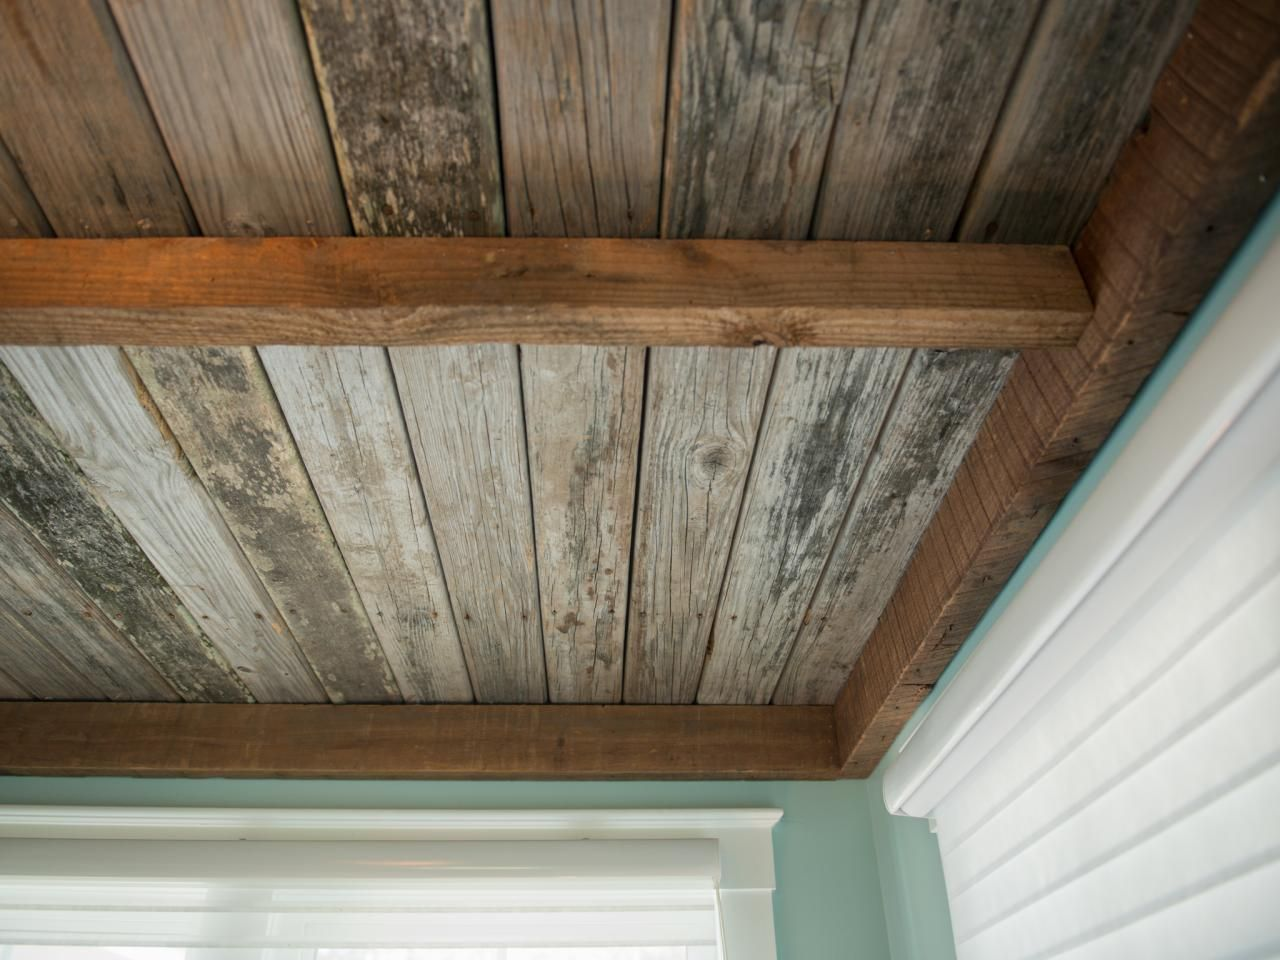 The Ceiling Is Clad In Distressed Wood From The Old Dock While The